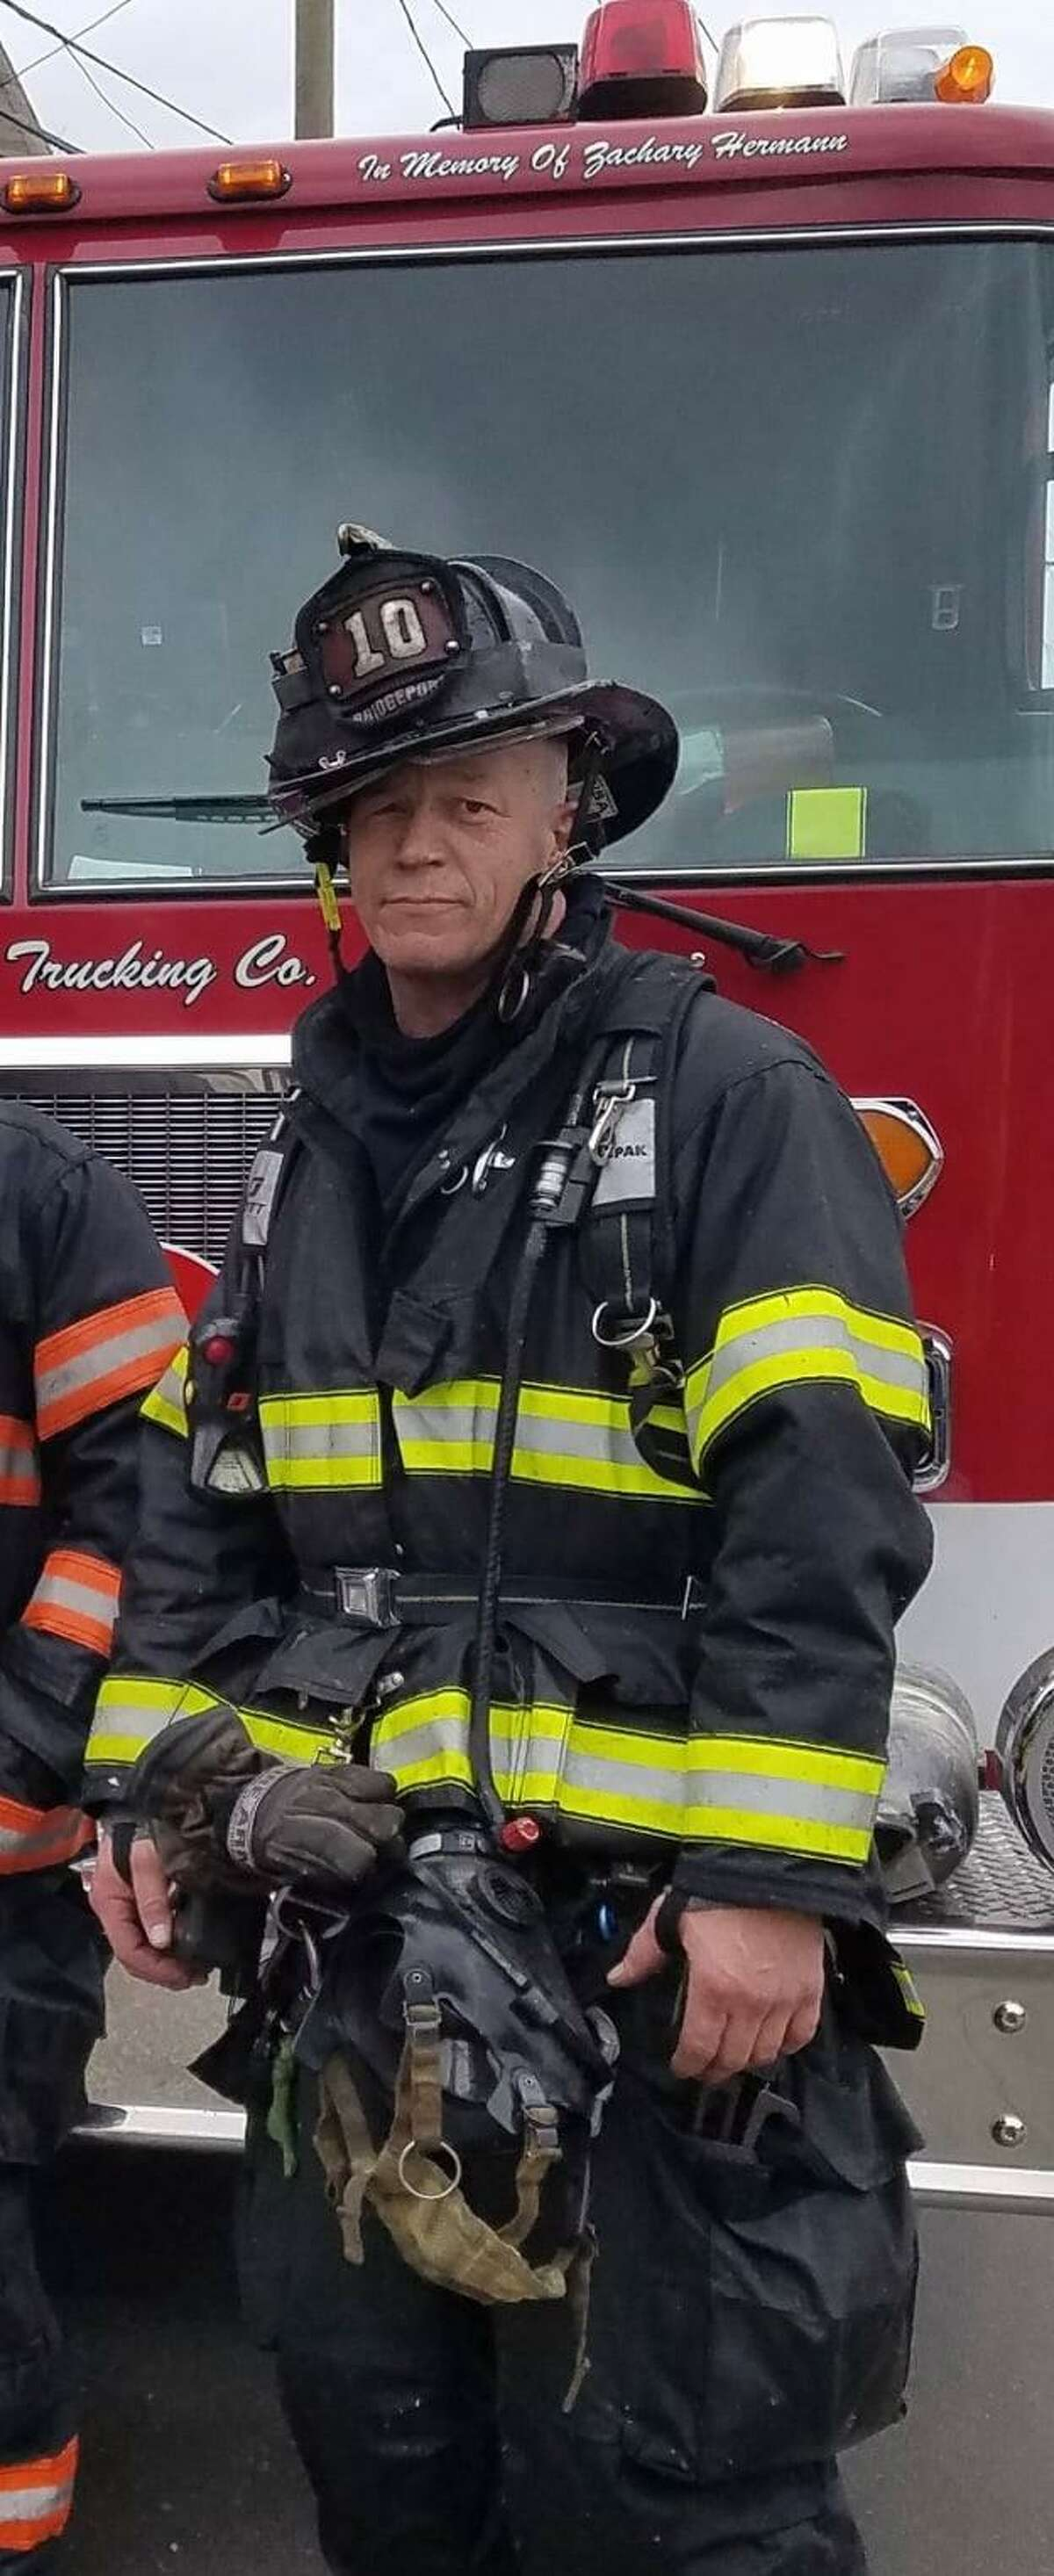 Stephen Buda, a pump engineer for the Bridgeport Fire Department, died after a rock climbing incident, the fire department announced Tuesday.